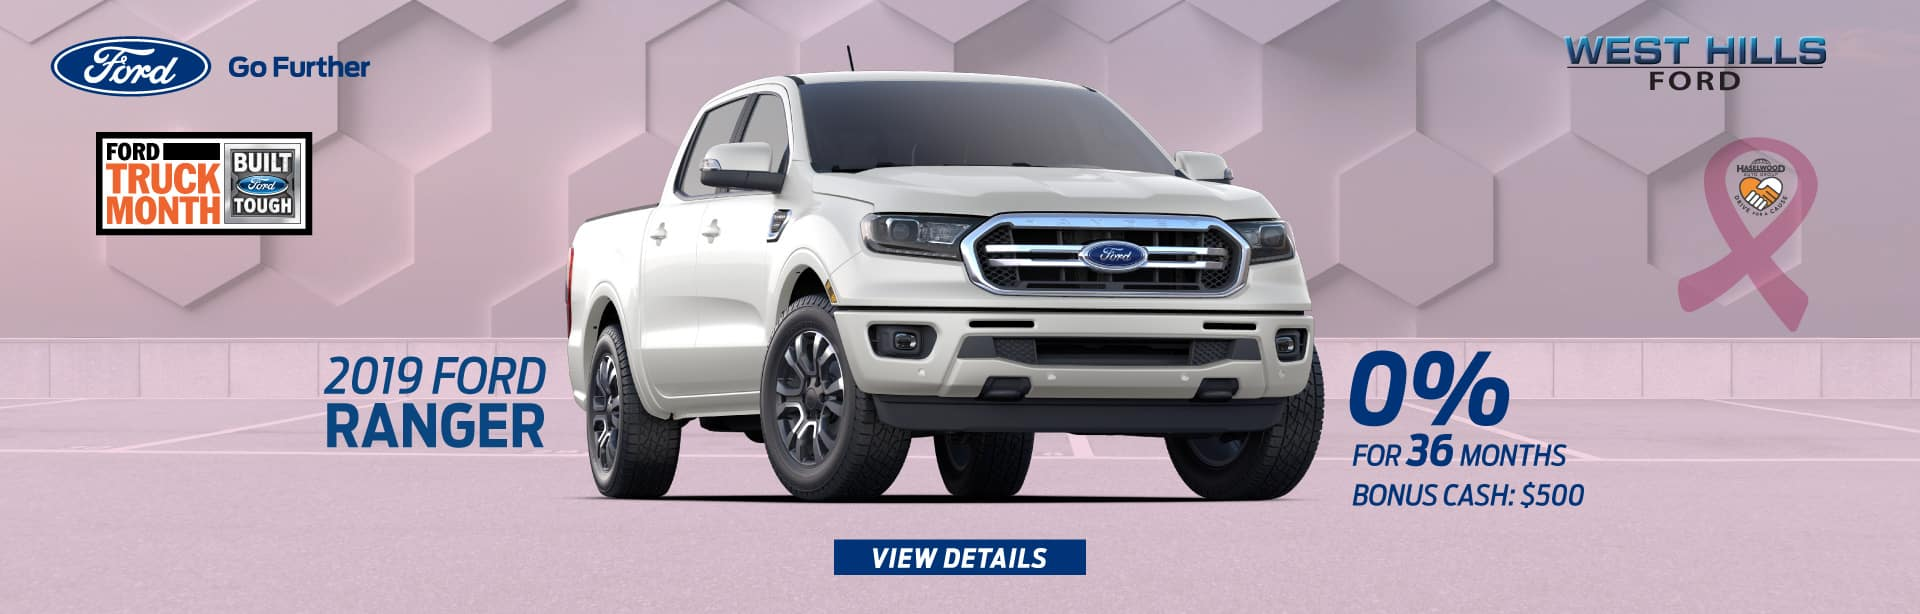 2019 Ford Ranger 0% for 36 mos.* Bonus Cash: $500   * Offer valid on 2019 Ford Ranger (PRM#21079, 13616). 0% APR for 36 months, plus $500 Bonus Cash. MSRP starting at $25,495. Subject to credit approval. For Qualified 720+ Rated Credit through Ford Credit. $0 Security Deposit Required. APR $13.89/$1000 borrowed. Not all buyers will qualify. Down payment and monthly payment may vary. Excludes state and local taxes, tags, registration, title, insurance and dealer charges. See dealer for qualifications and complete details. A negotiable dealer documentary service fee of up to $150 may be added to the sale price or capitalized cost. Offer expires 10/31/19.